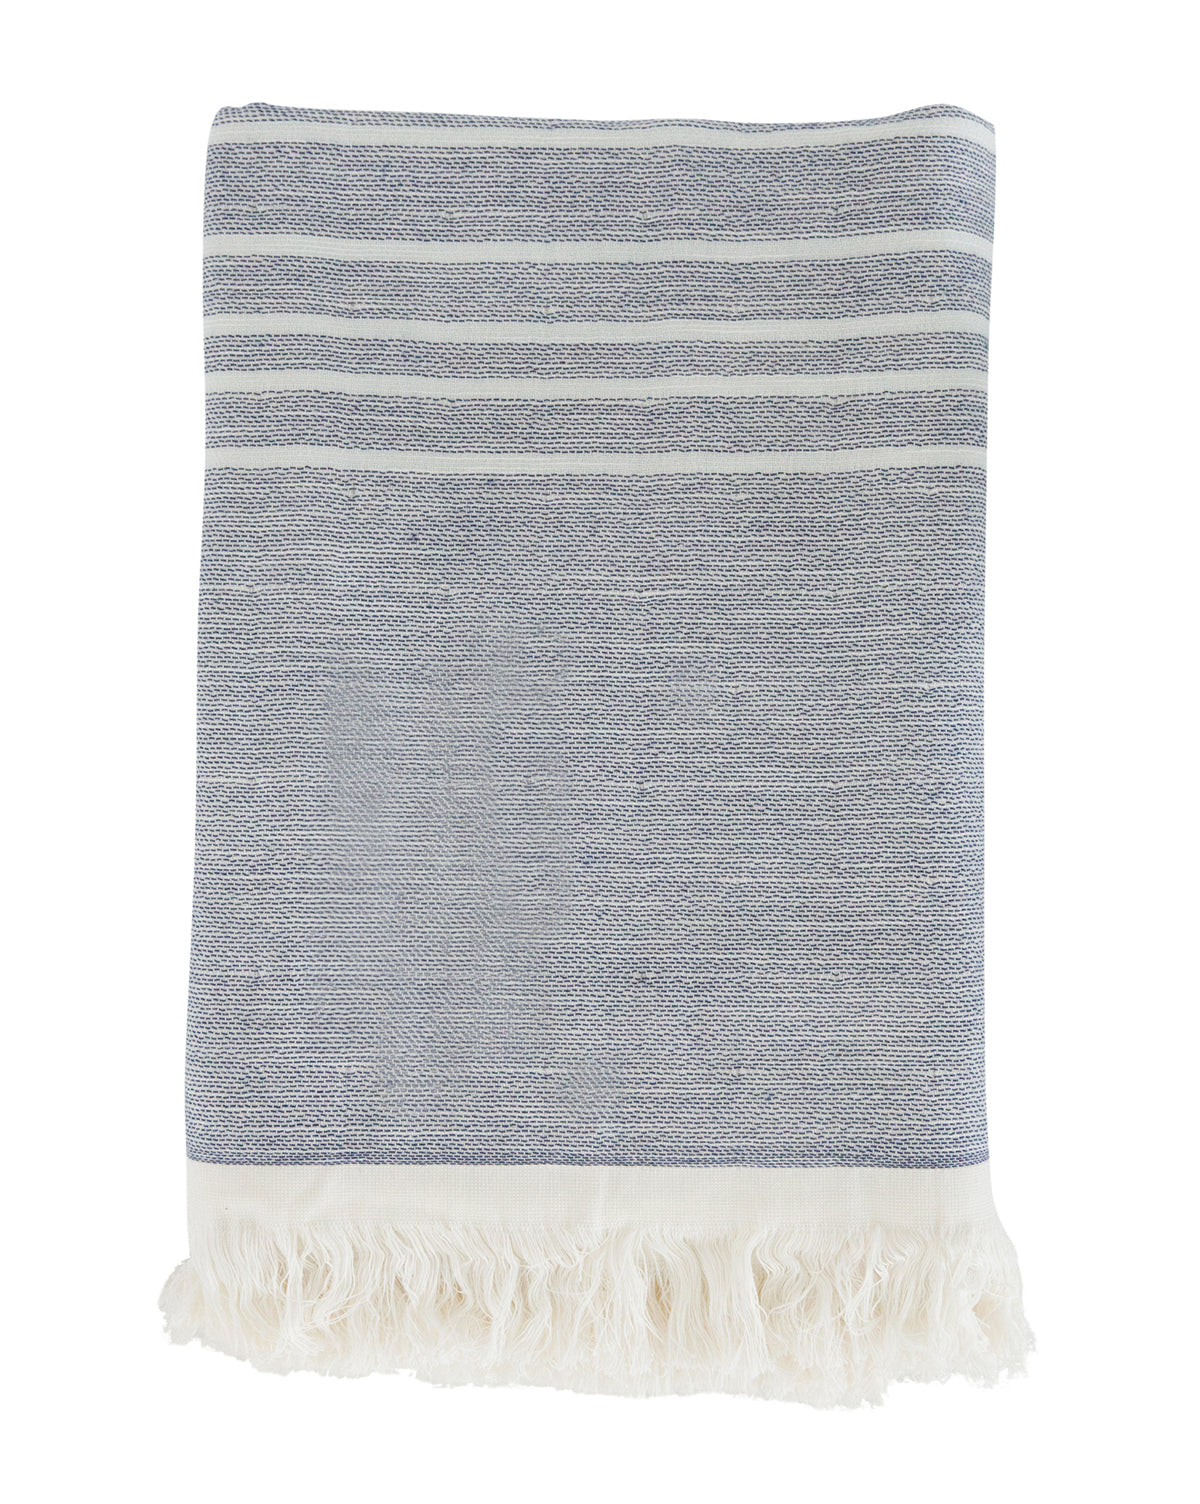 Cozumel Bath Towel